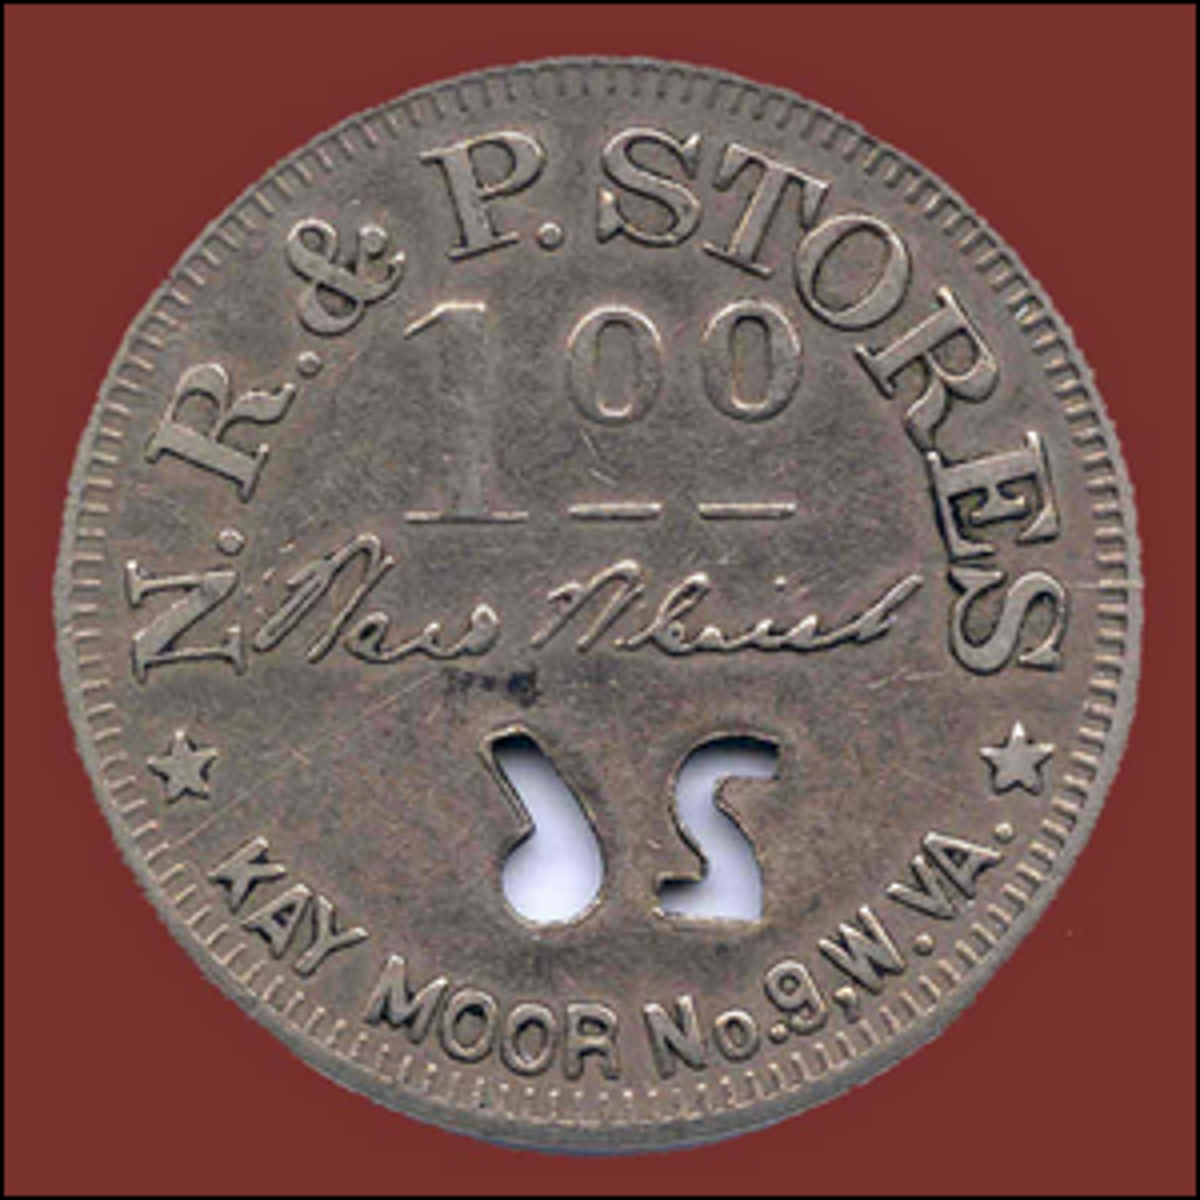 A one dollar scrip coin issued by the Kay Moor Coal Company in the 1890s.